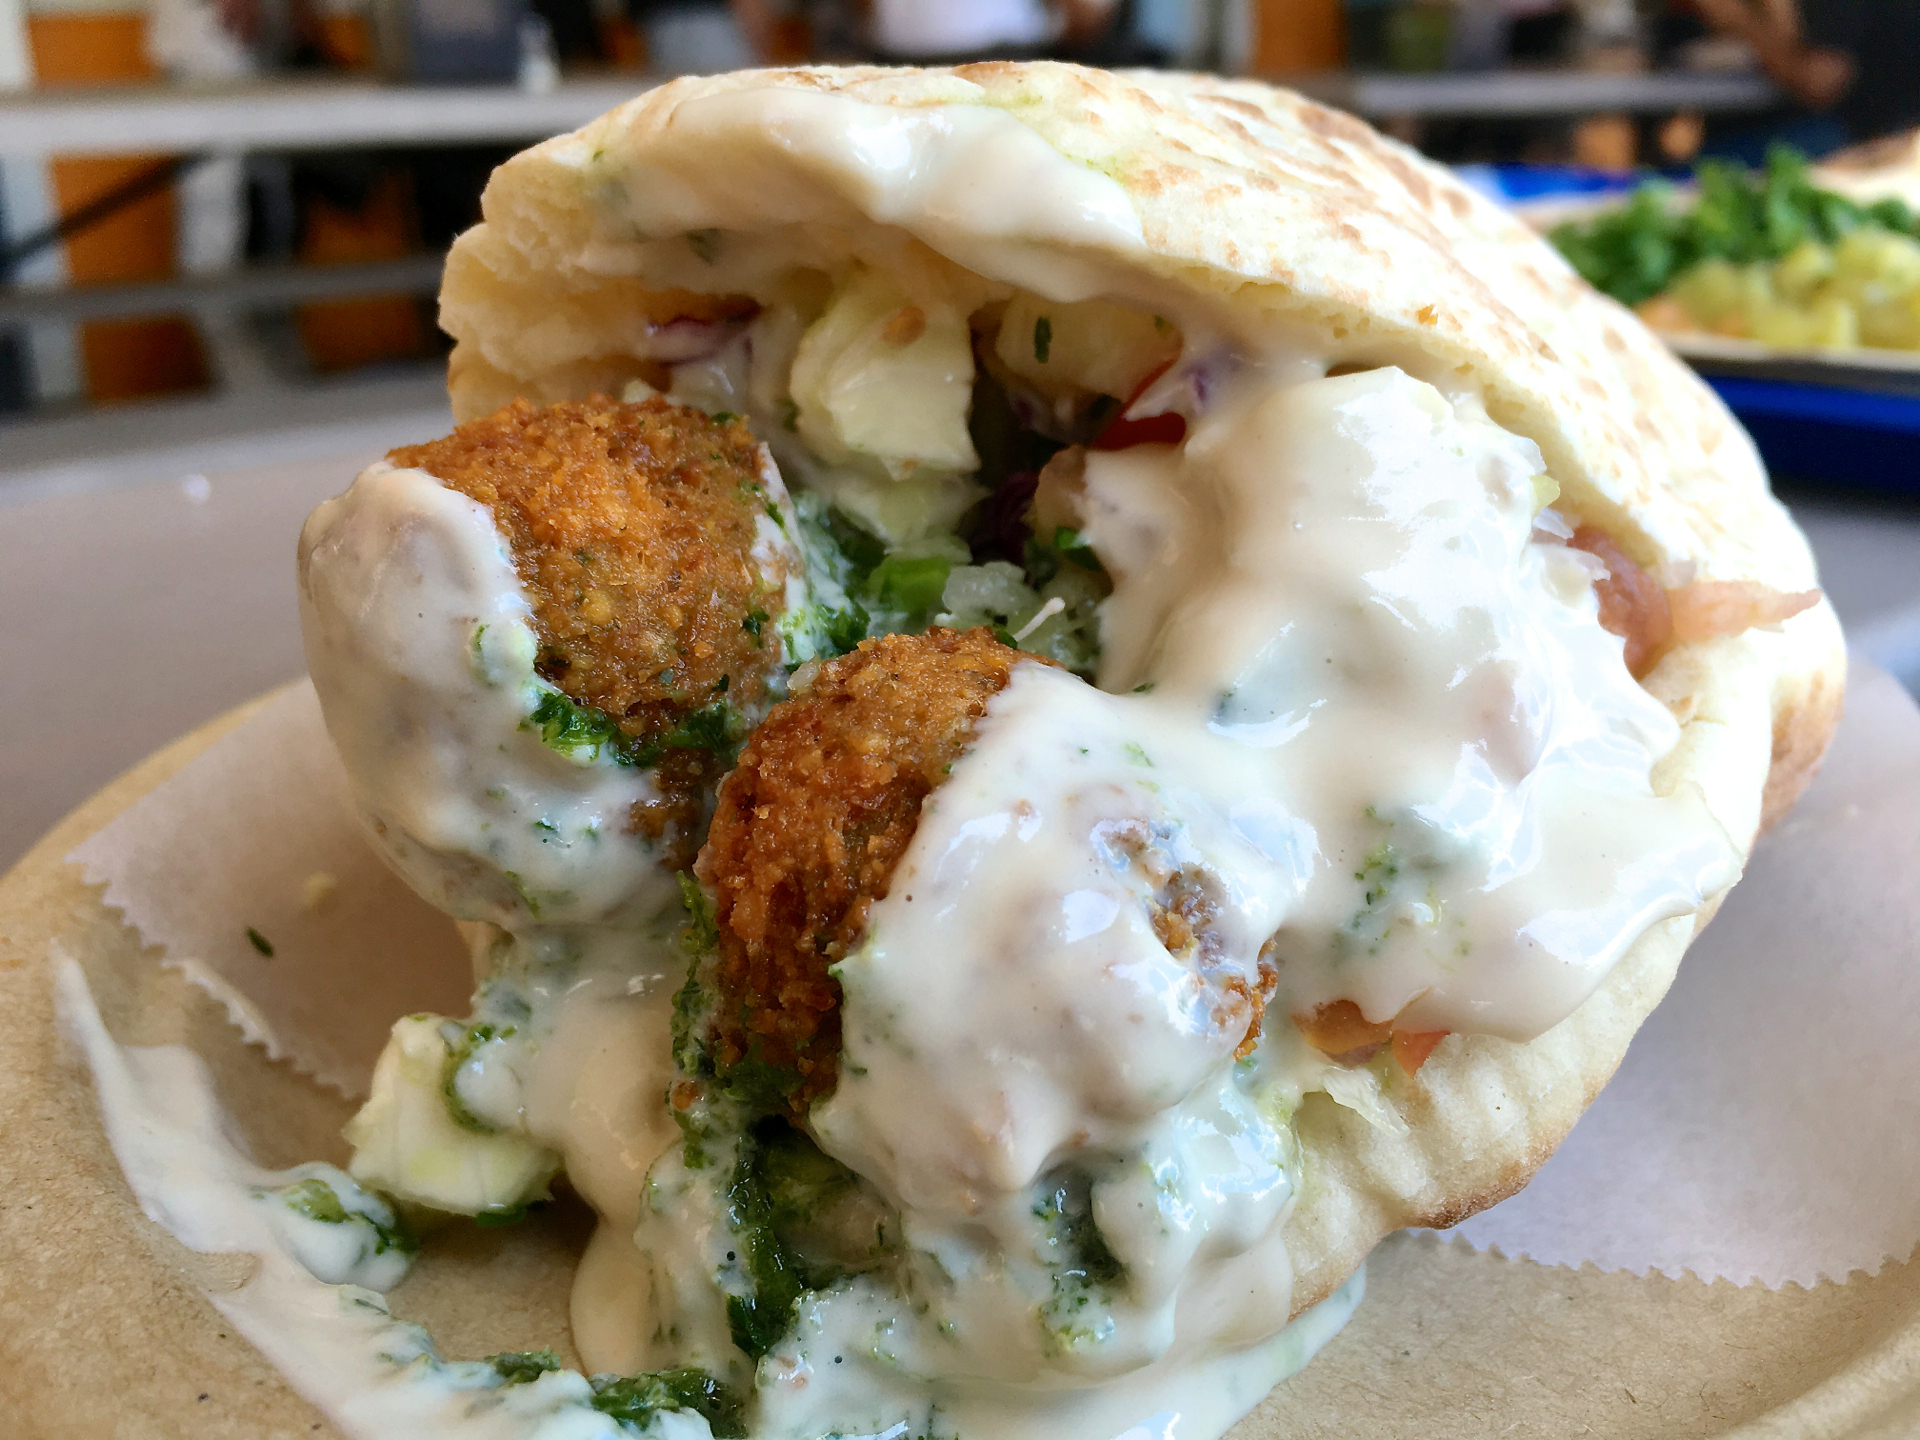 A falafel pita with spicy tahini at Falafel stop.